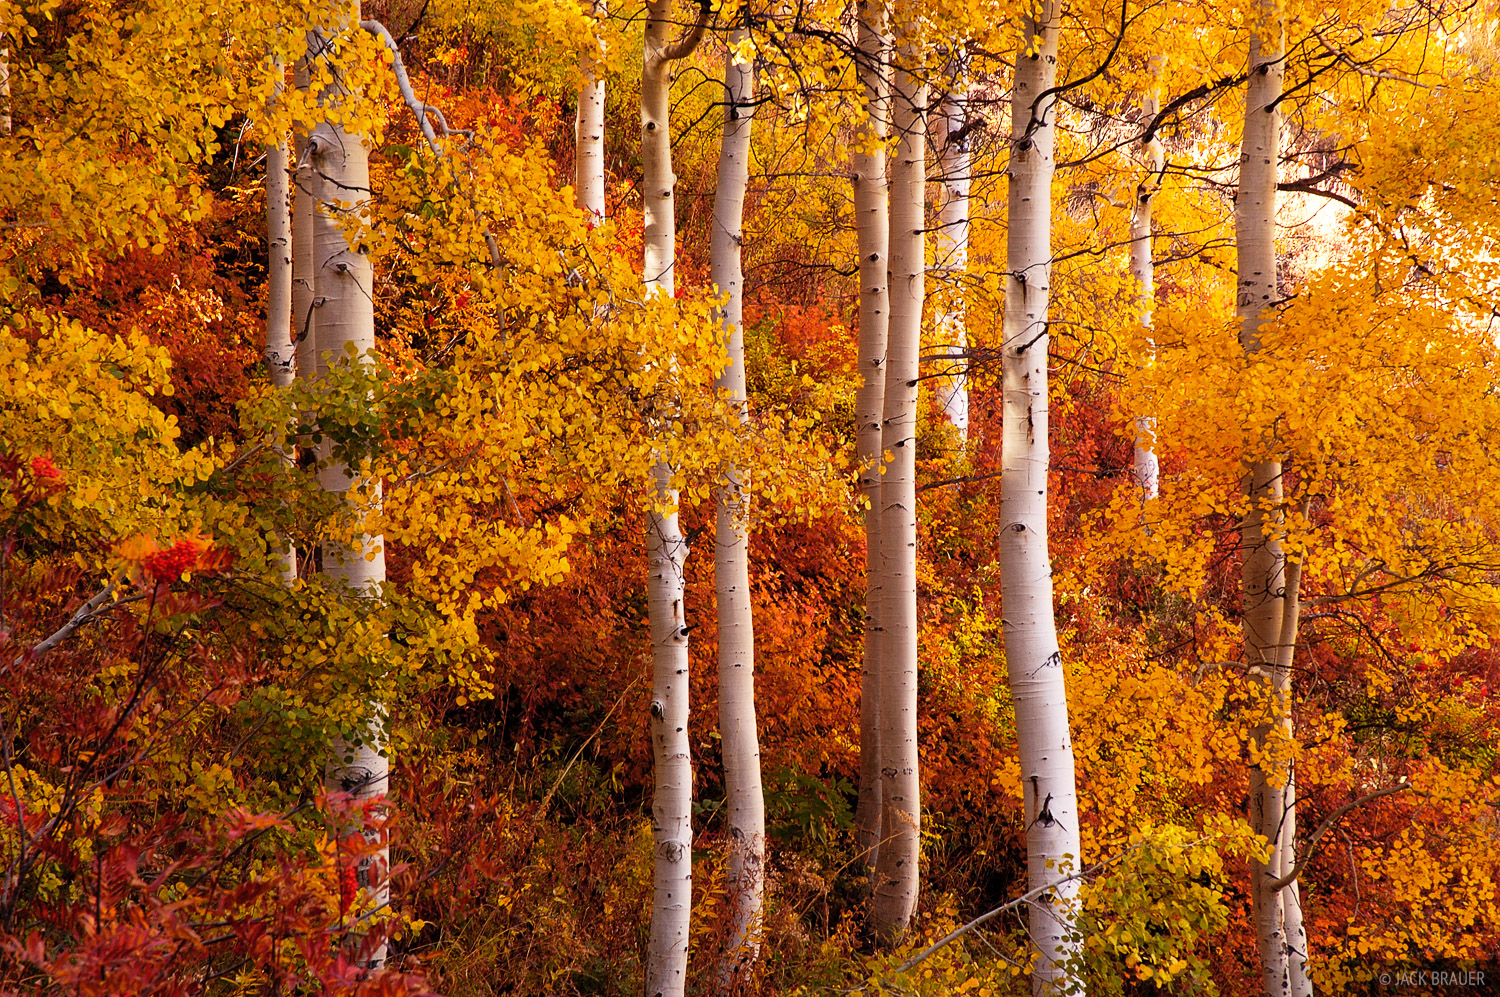 Aspens, Butler Creek, Little Cottonwood Canyon, Wasatch Range, Utah, photo